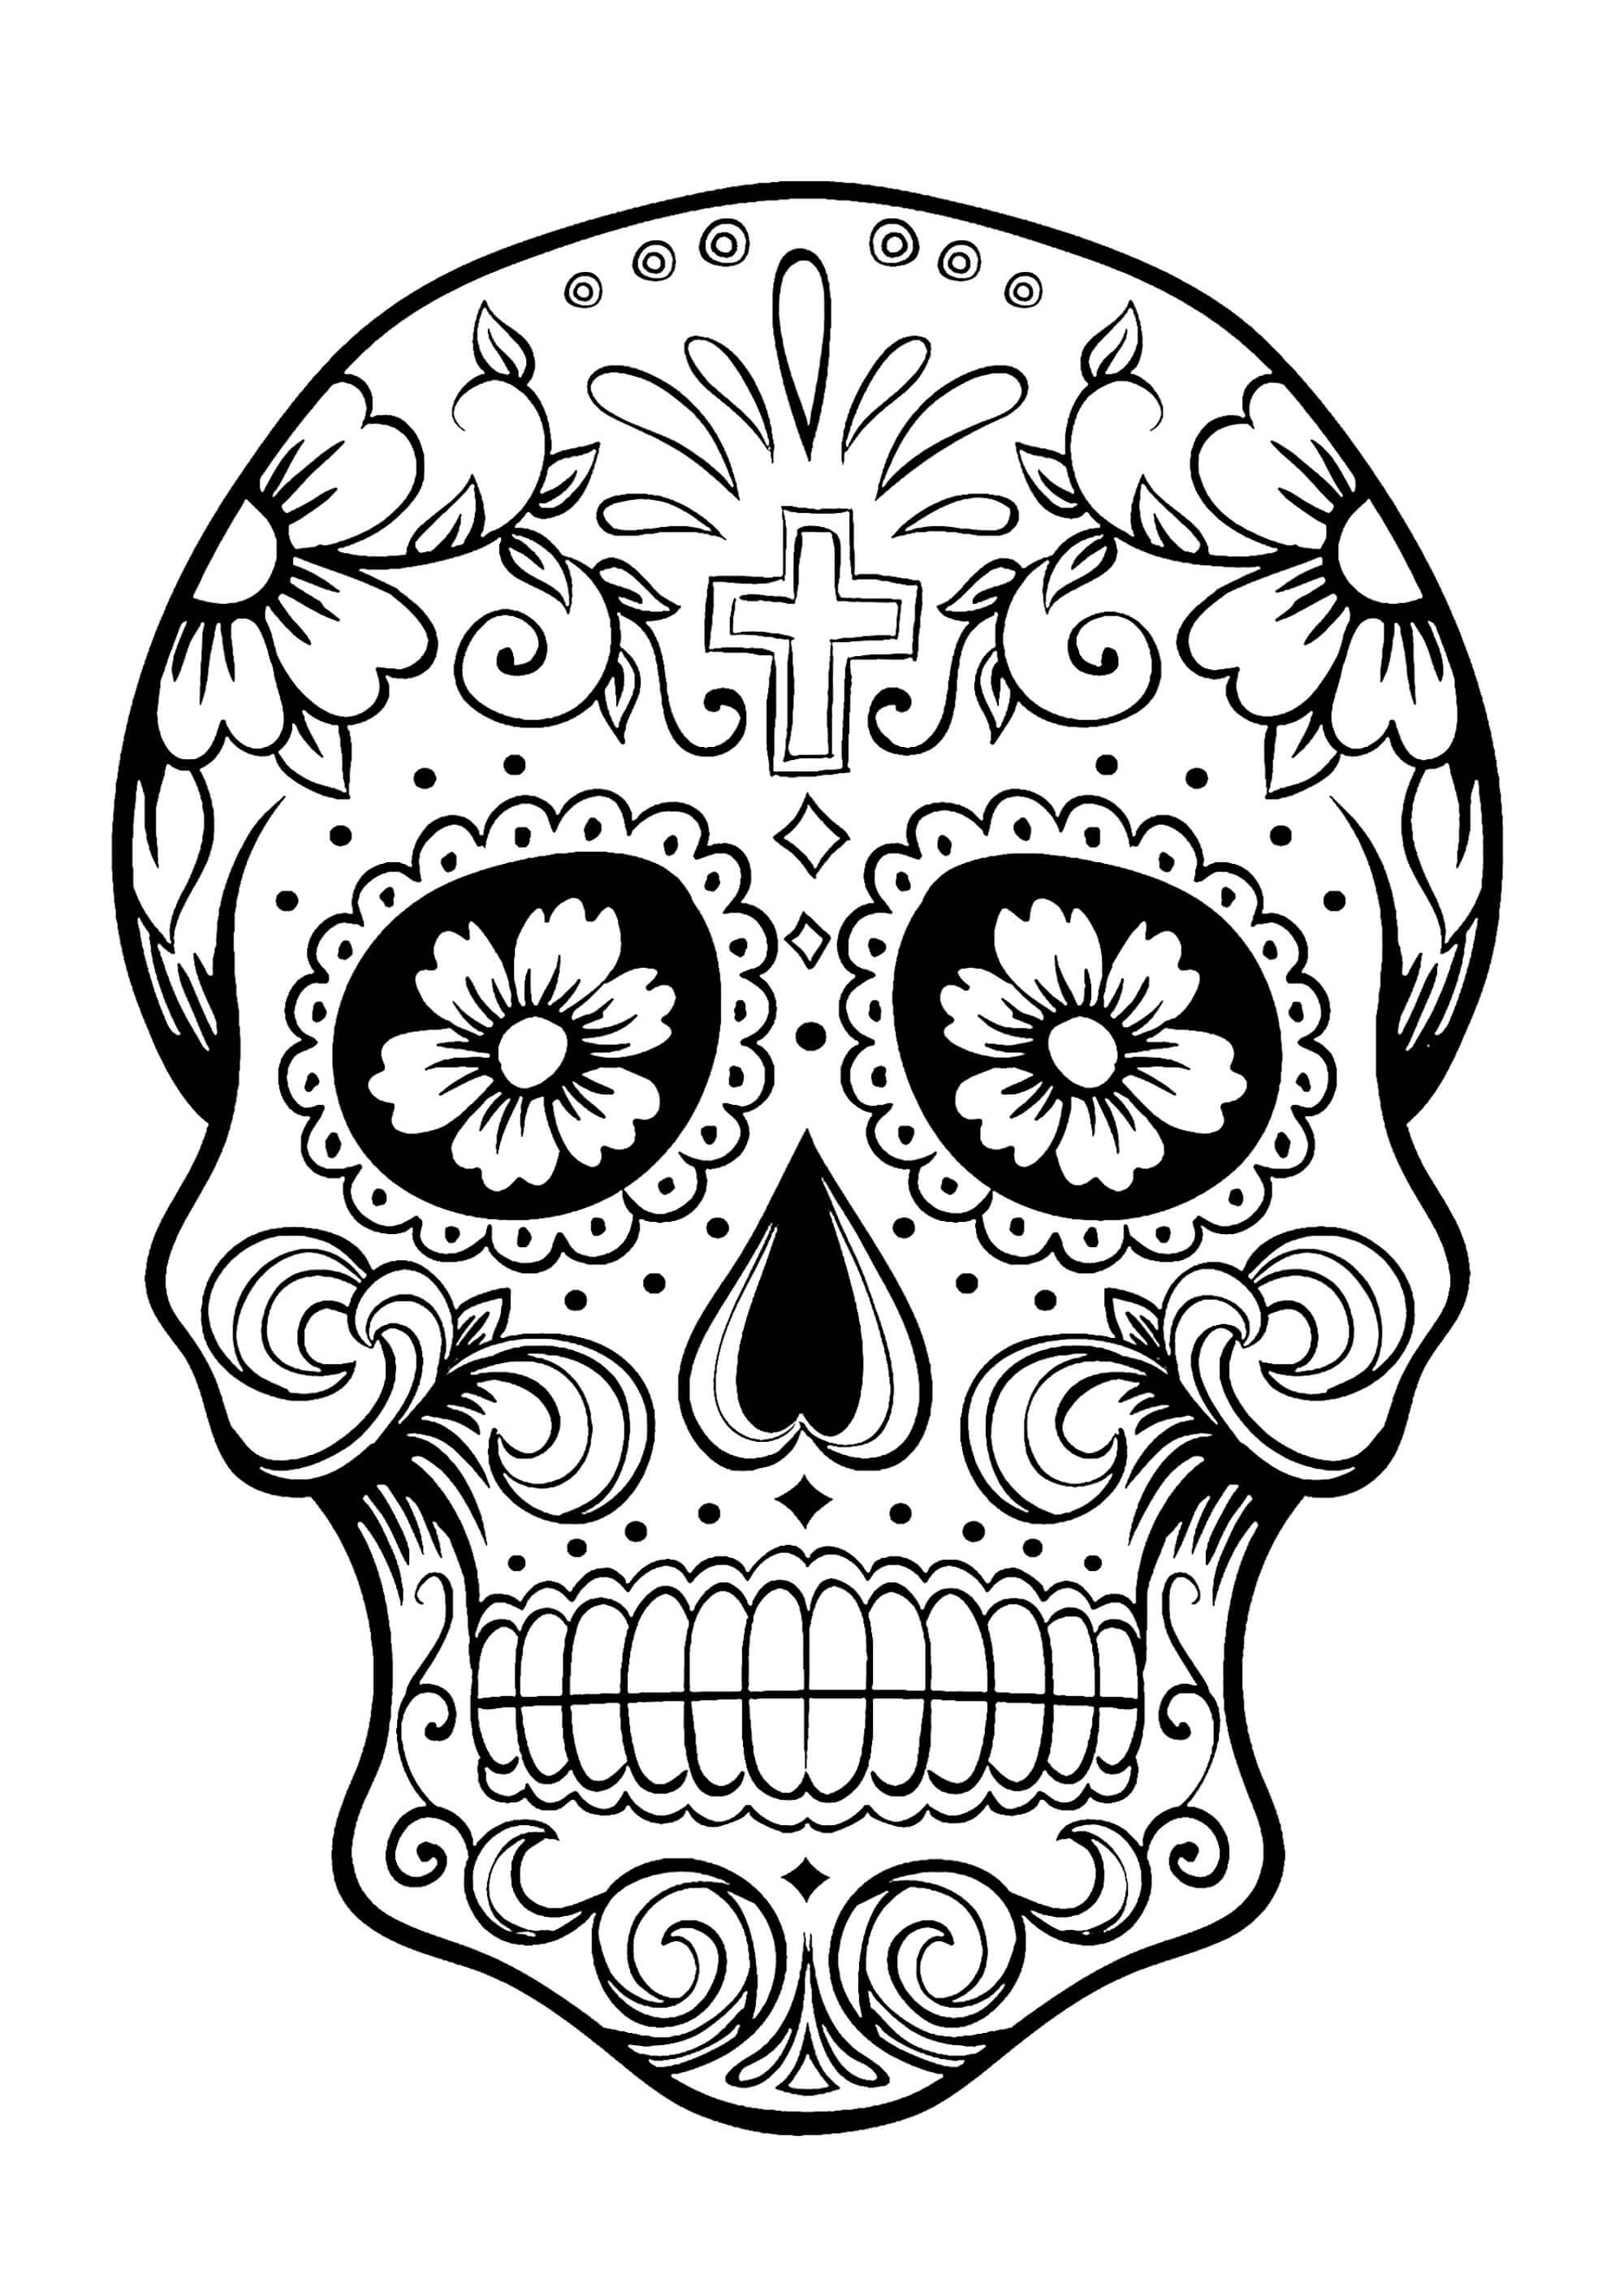 Sugar Skull Drawing Template | Free Download Best Sugar Regarding Blank Sugar Skull Template